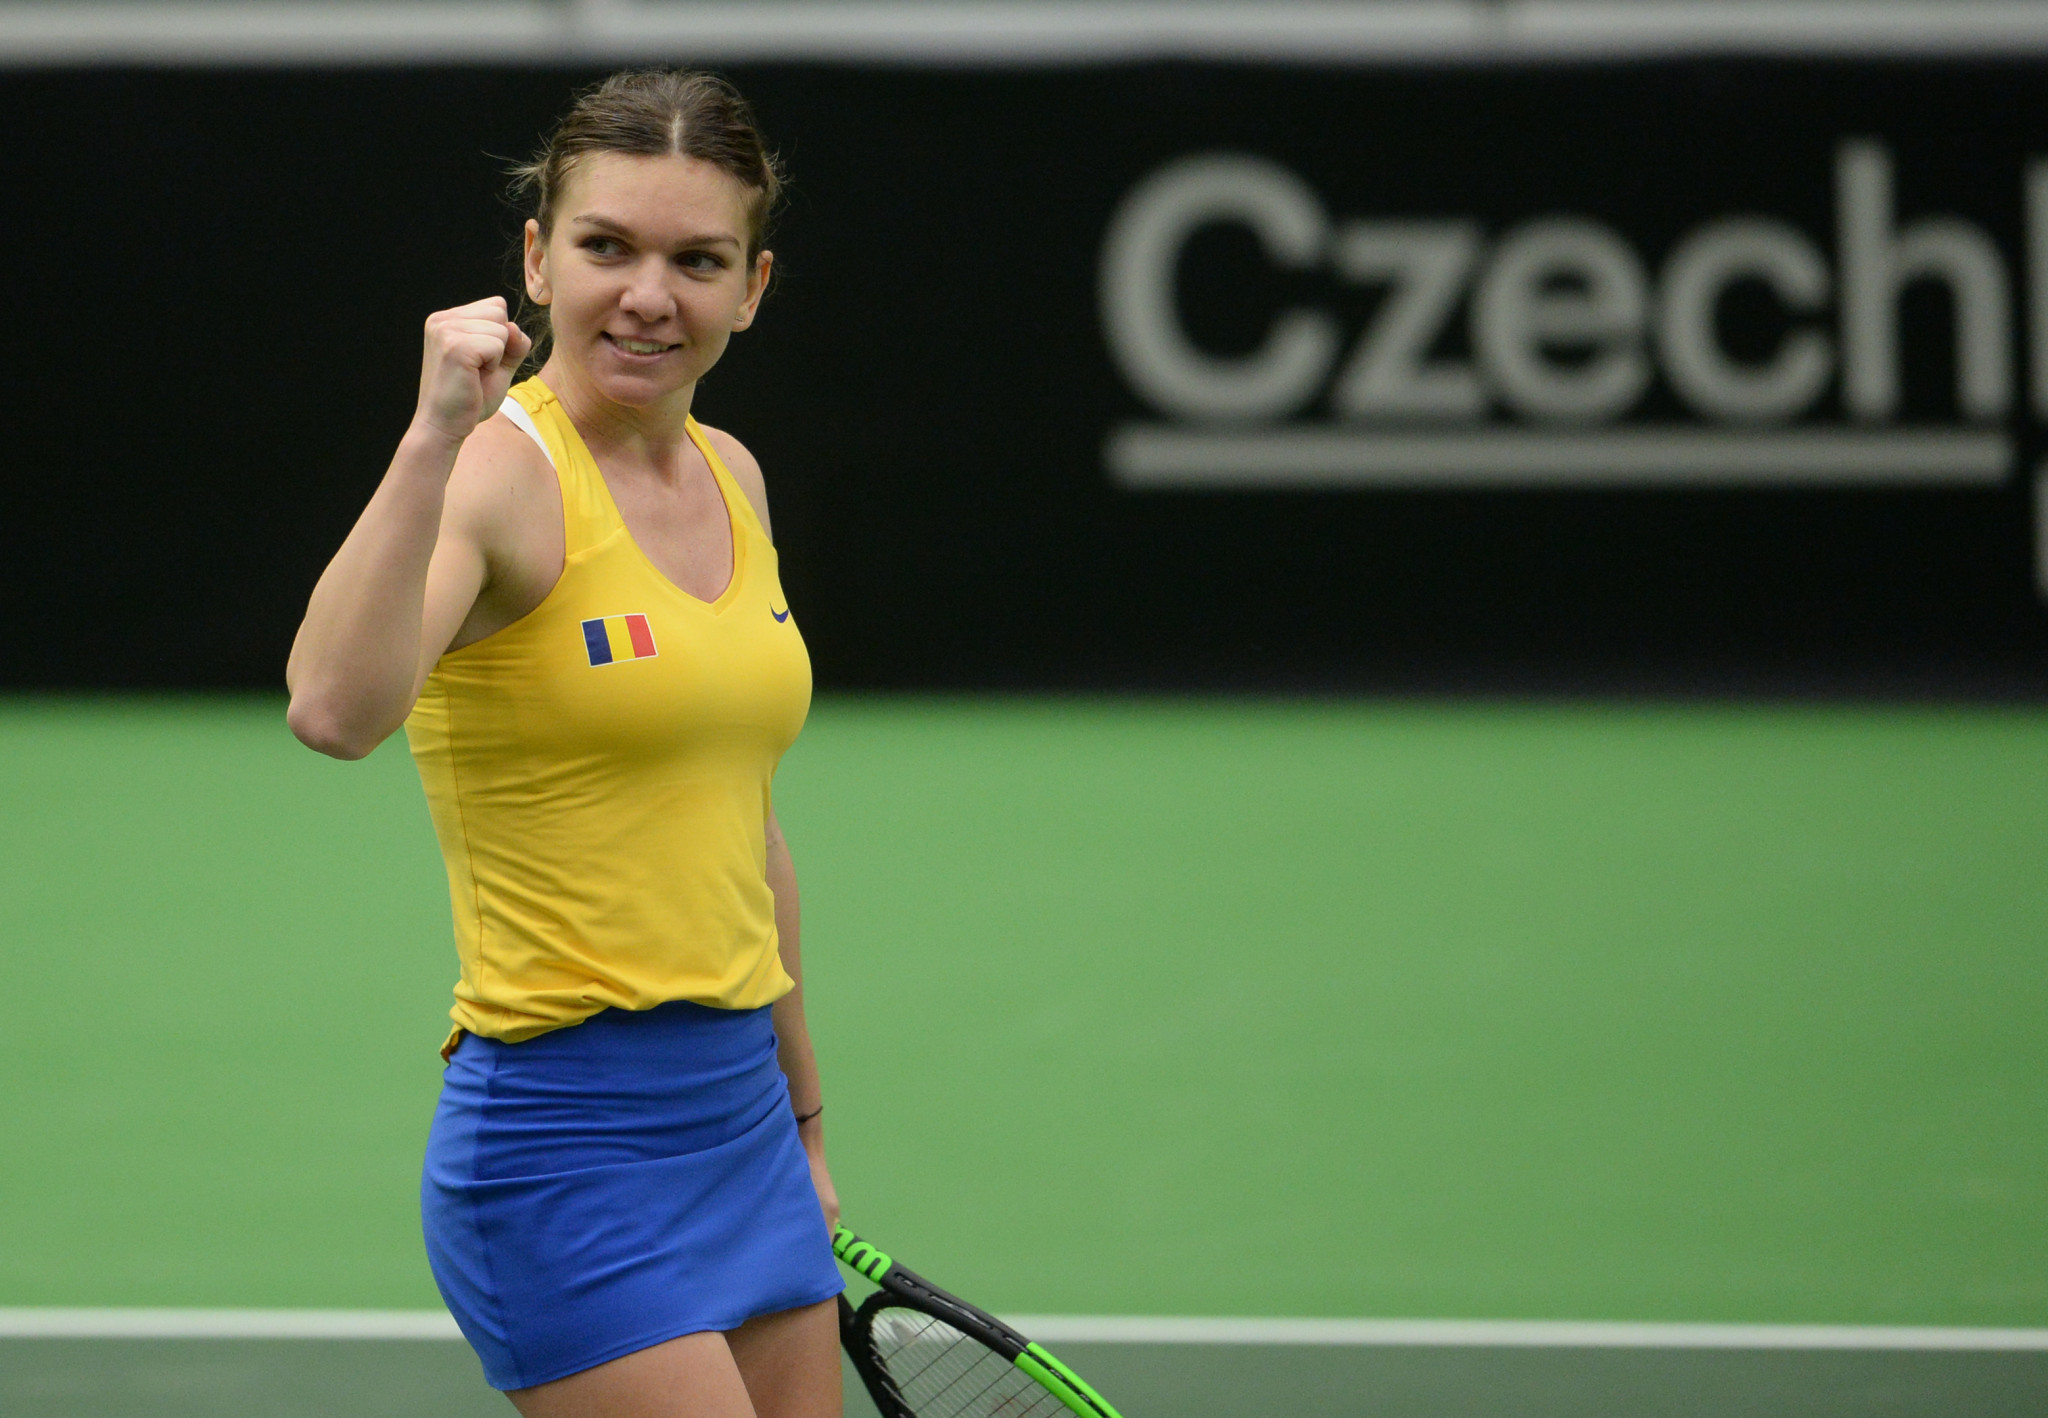 Top seed Halep through to quarter-finals at WTA Qatar Open